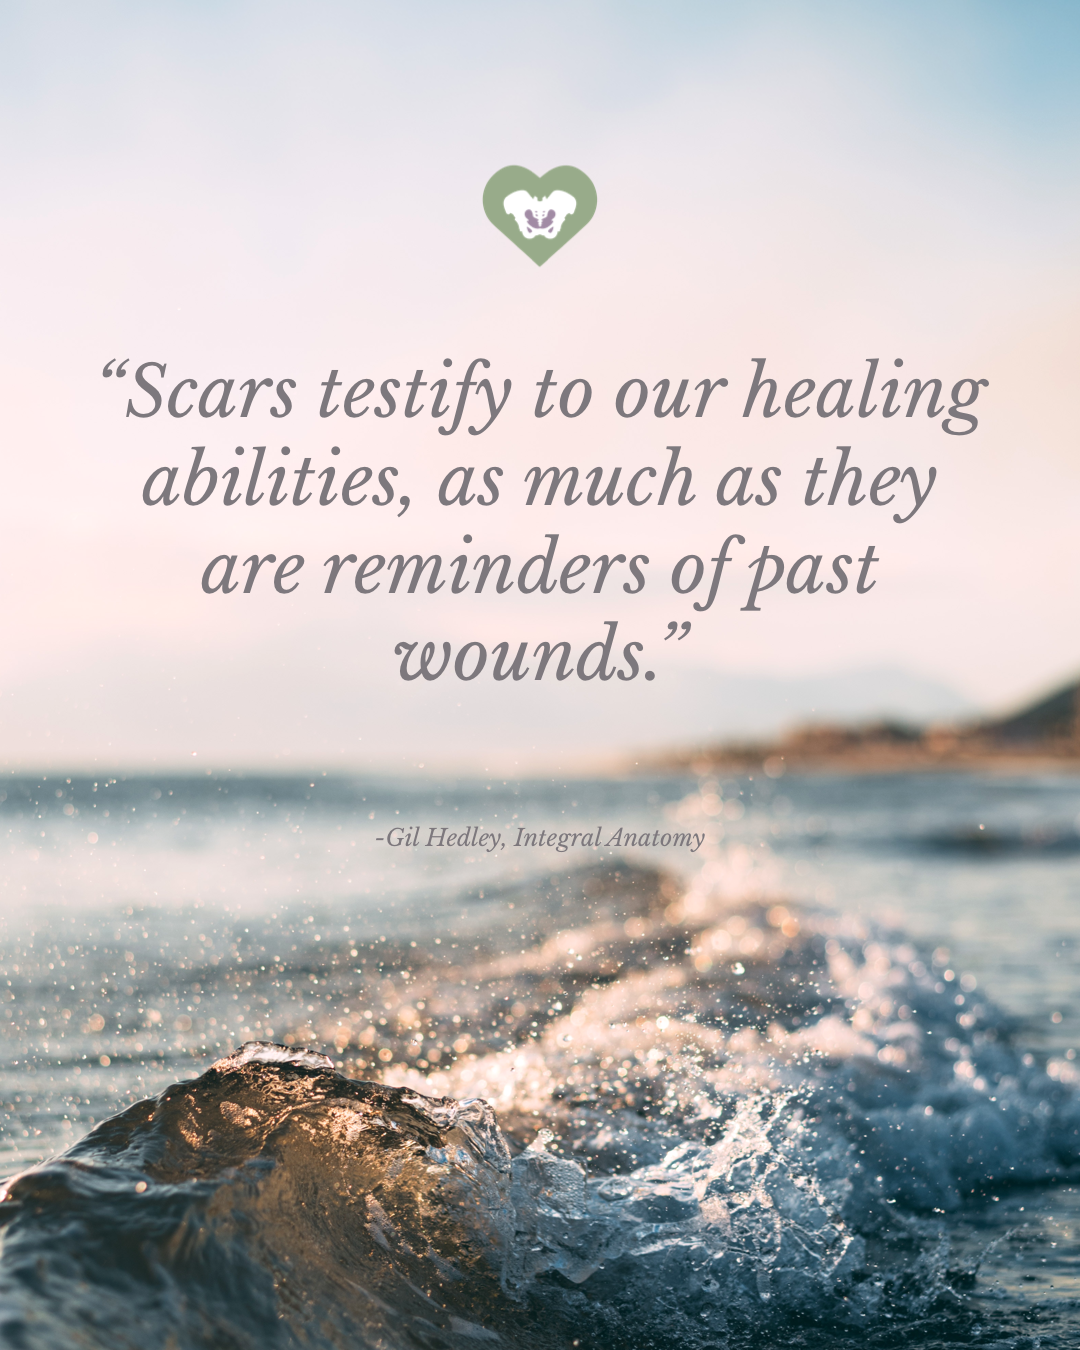 best way to heal scars effectively - physical therapy treatment